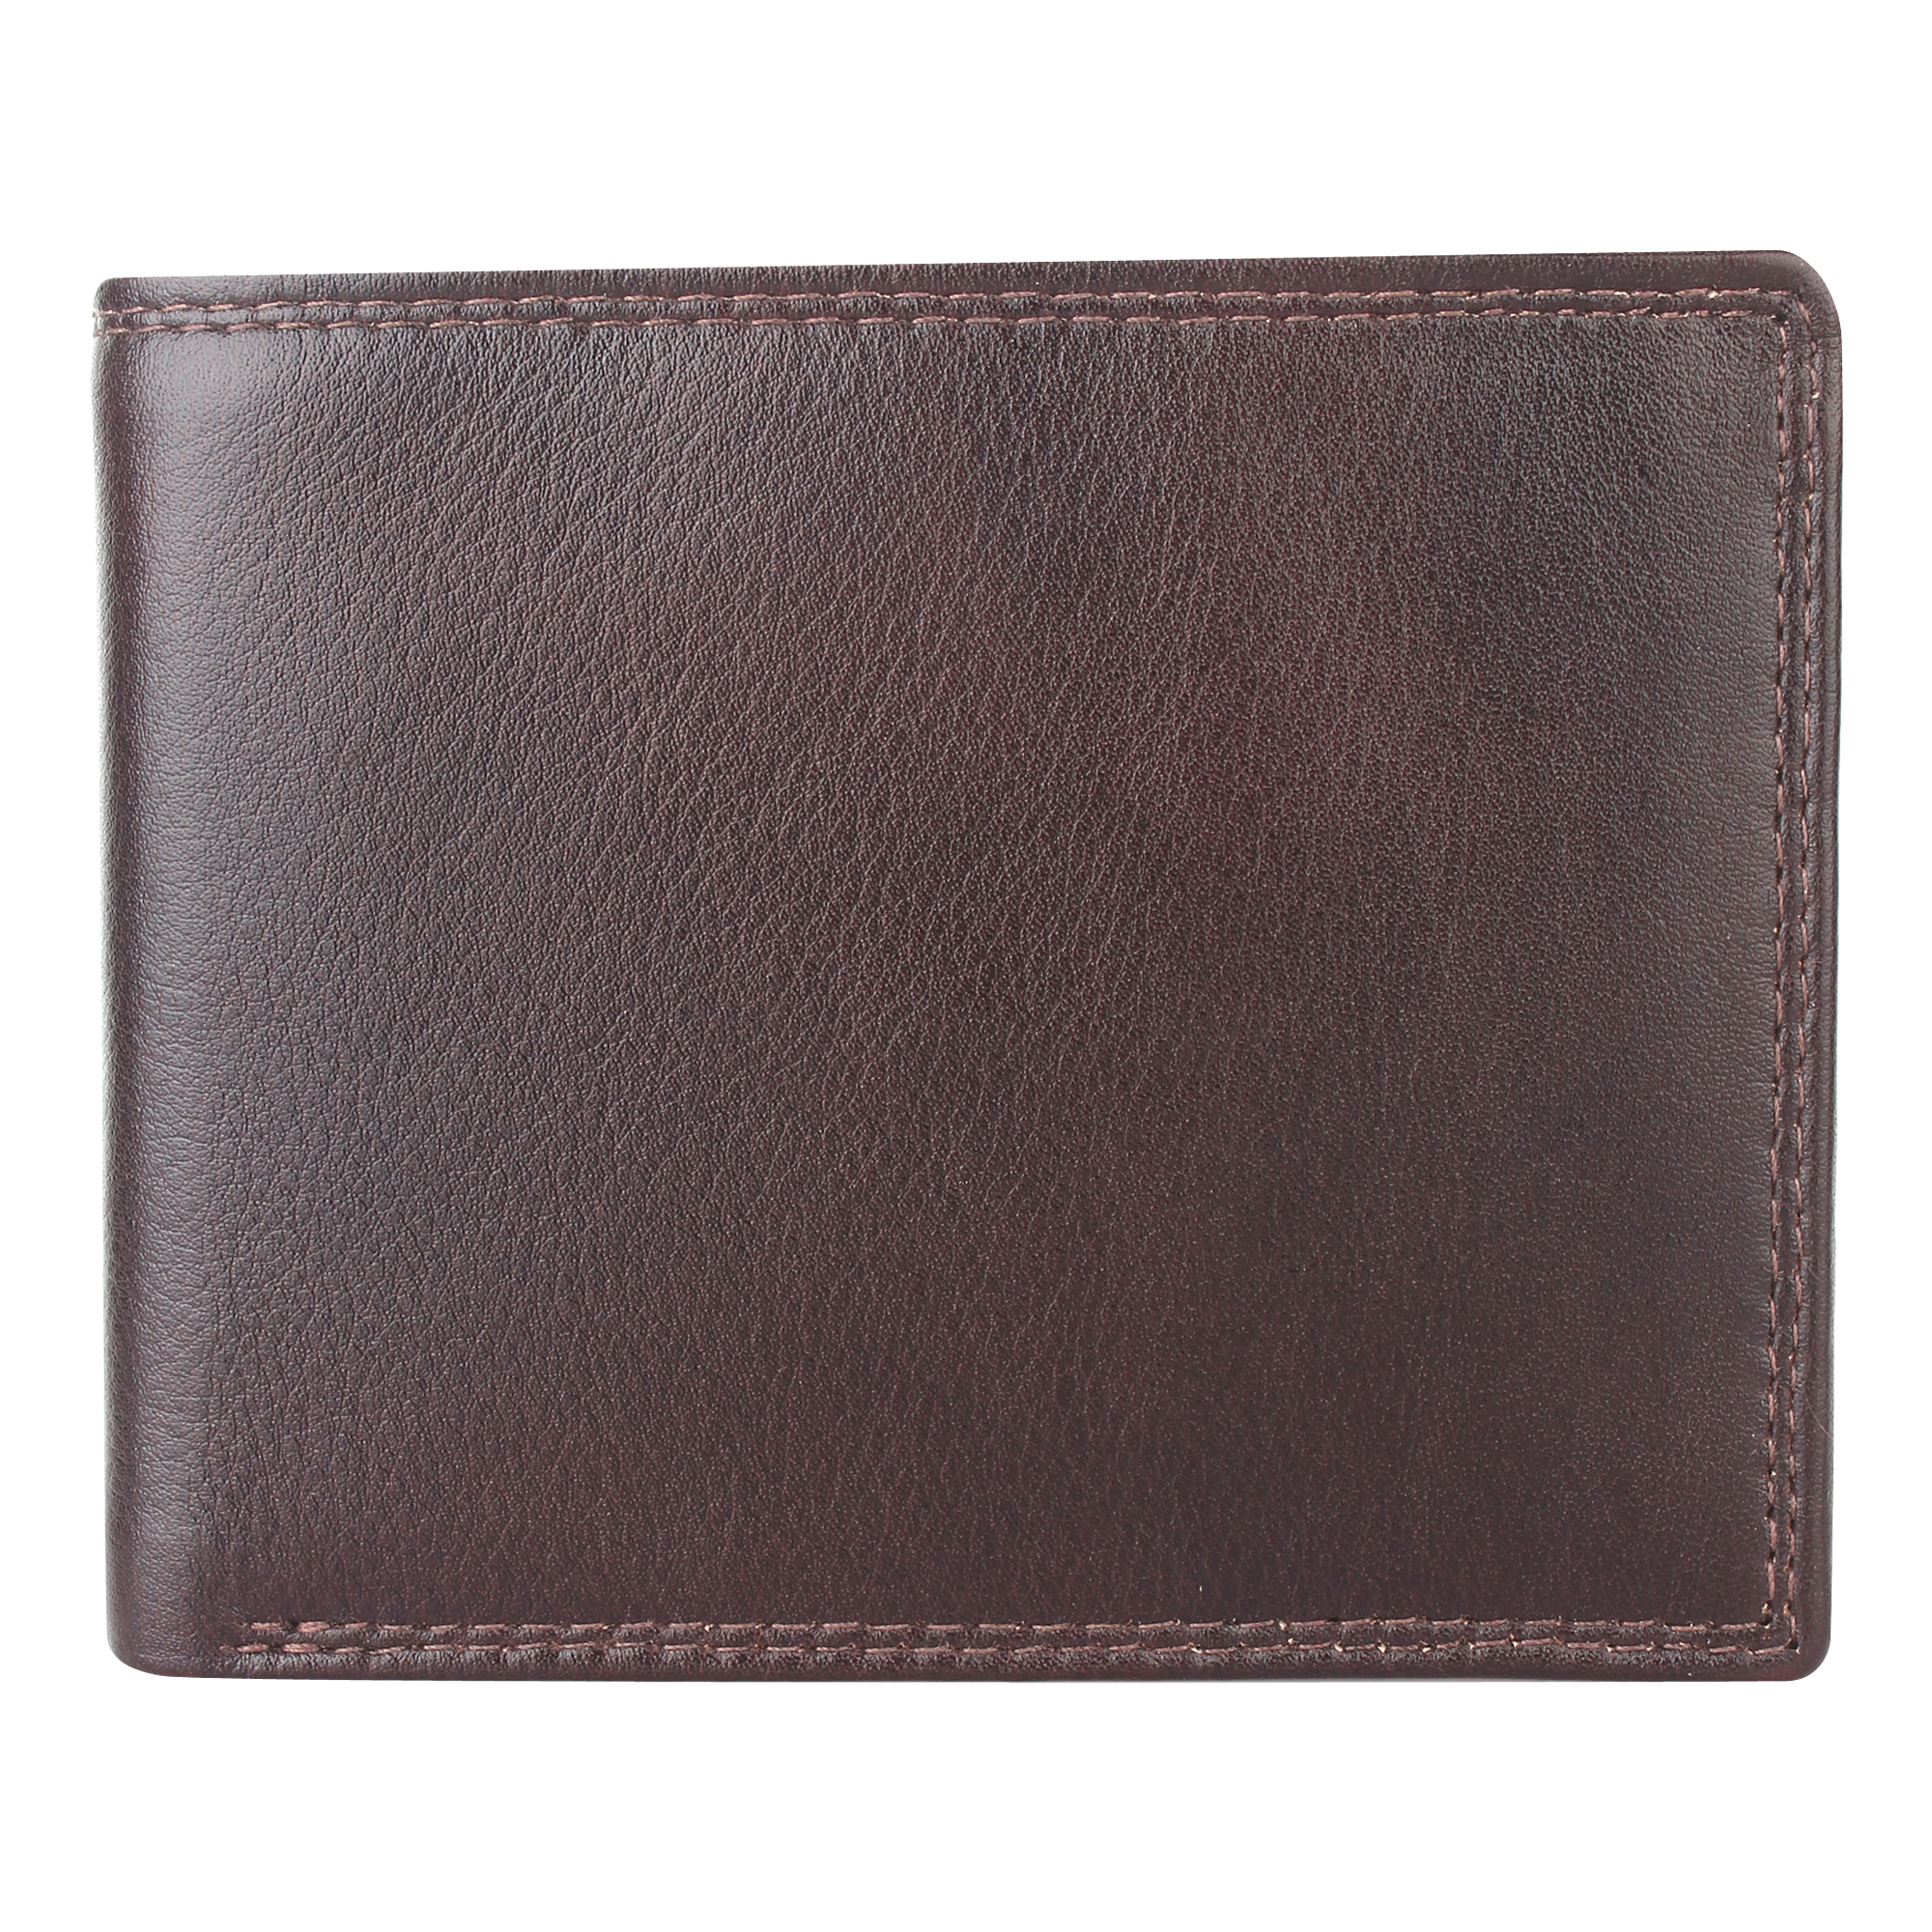 Leather Wallets Manufacturers in Montreal, Leather Wallets Suppliers in Montreal, Leather Wallets Wholesalers in Montreal, Leather Wallets Traders in Montreal